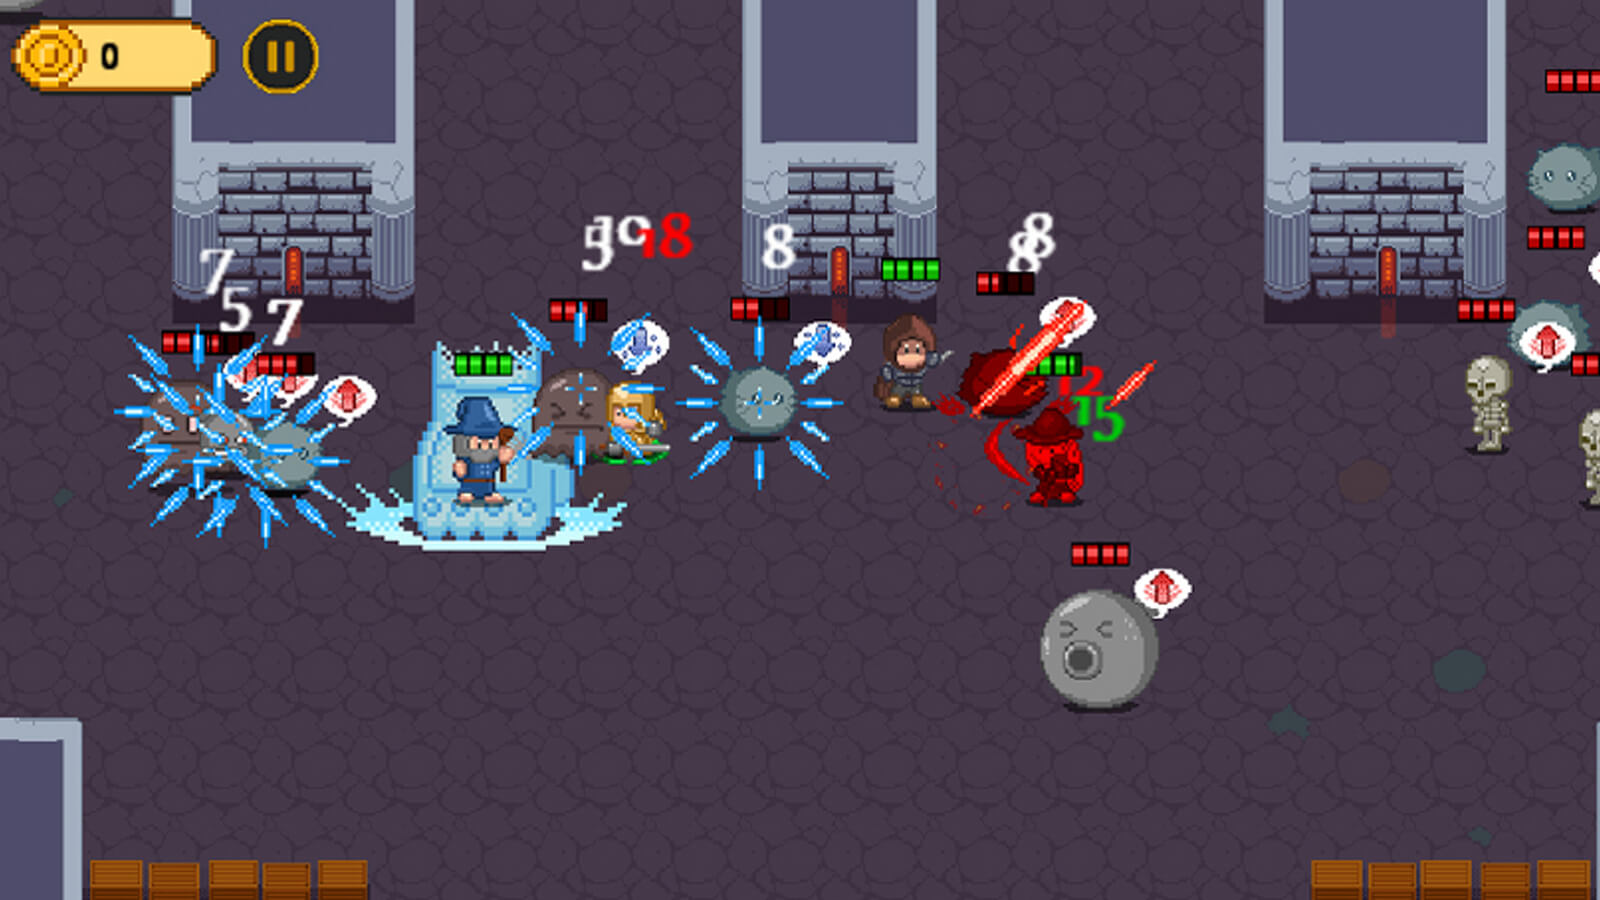 Three characters fight a group of gray sphere enemies. Damage indicators and HP bars can be seen throughout.